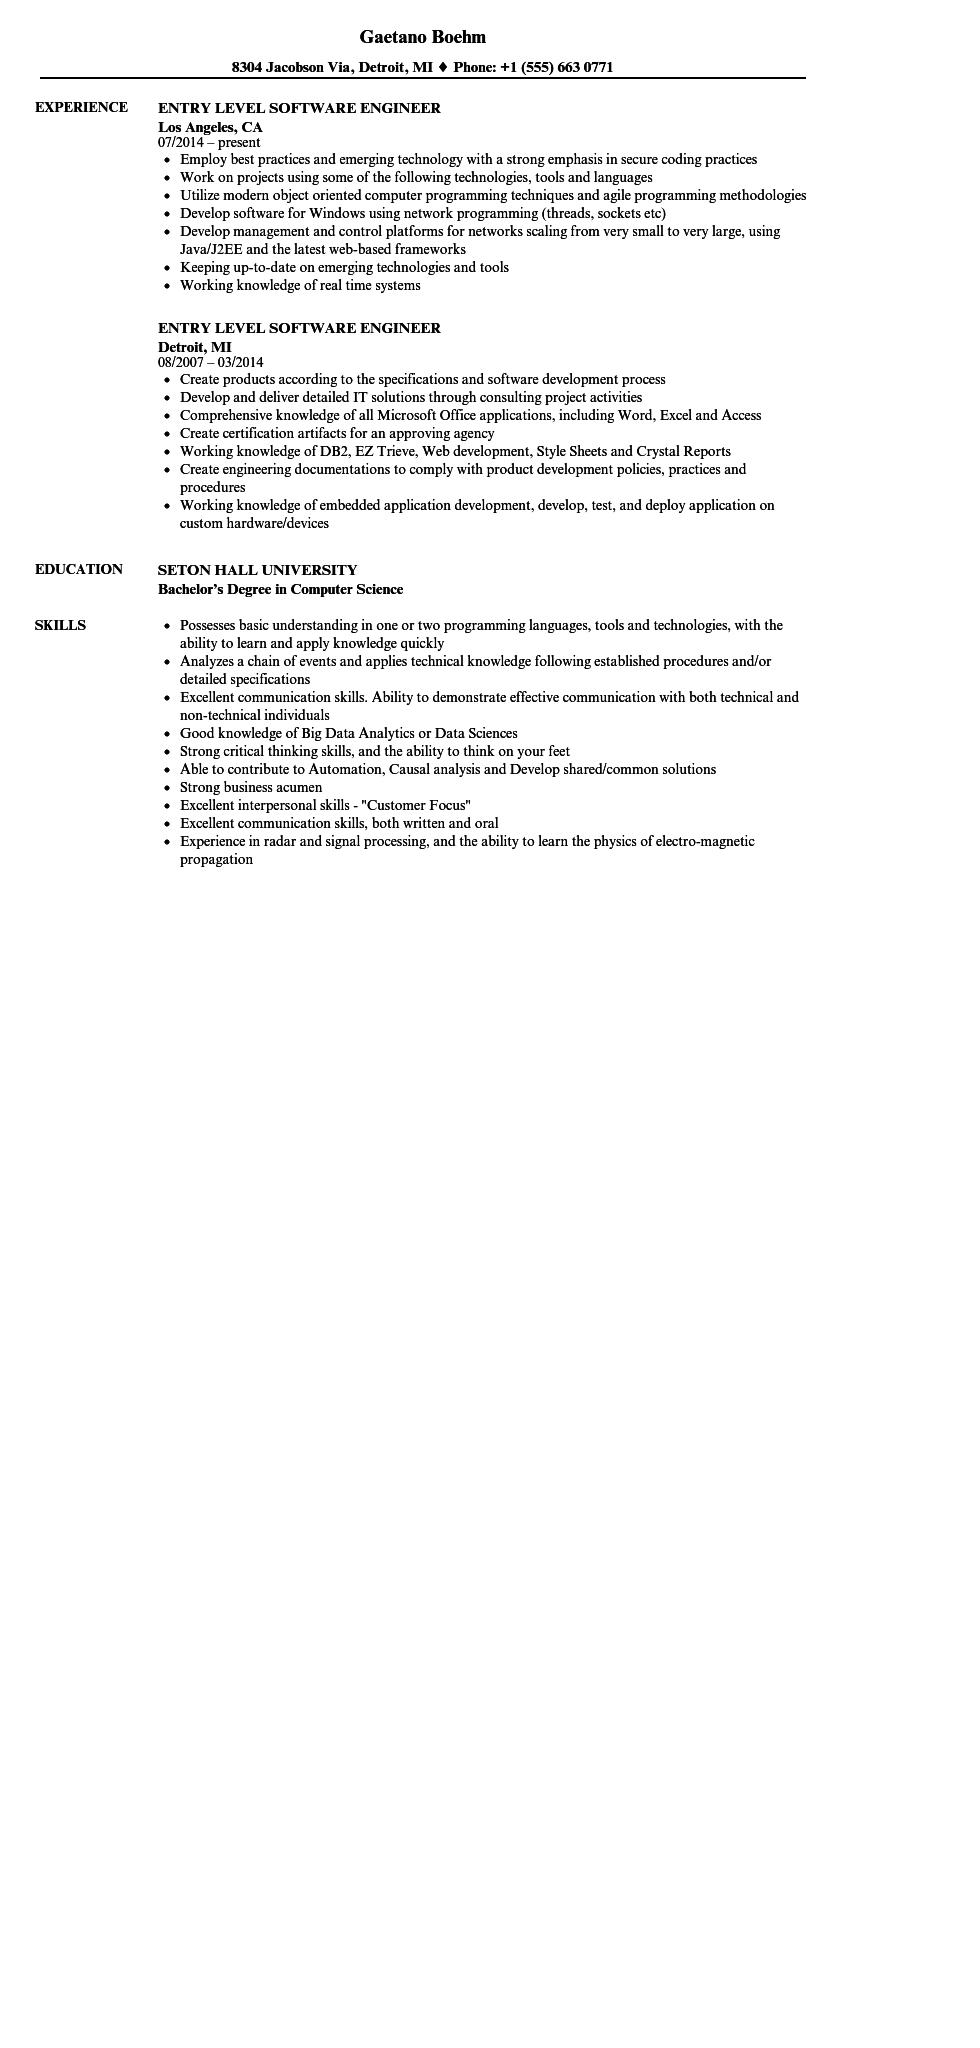 54 Excellent Entry Level Software Engineer Resume with Ideas